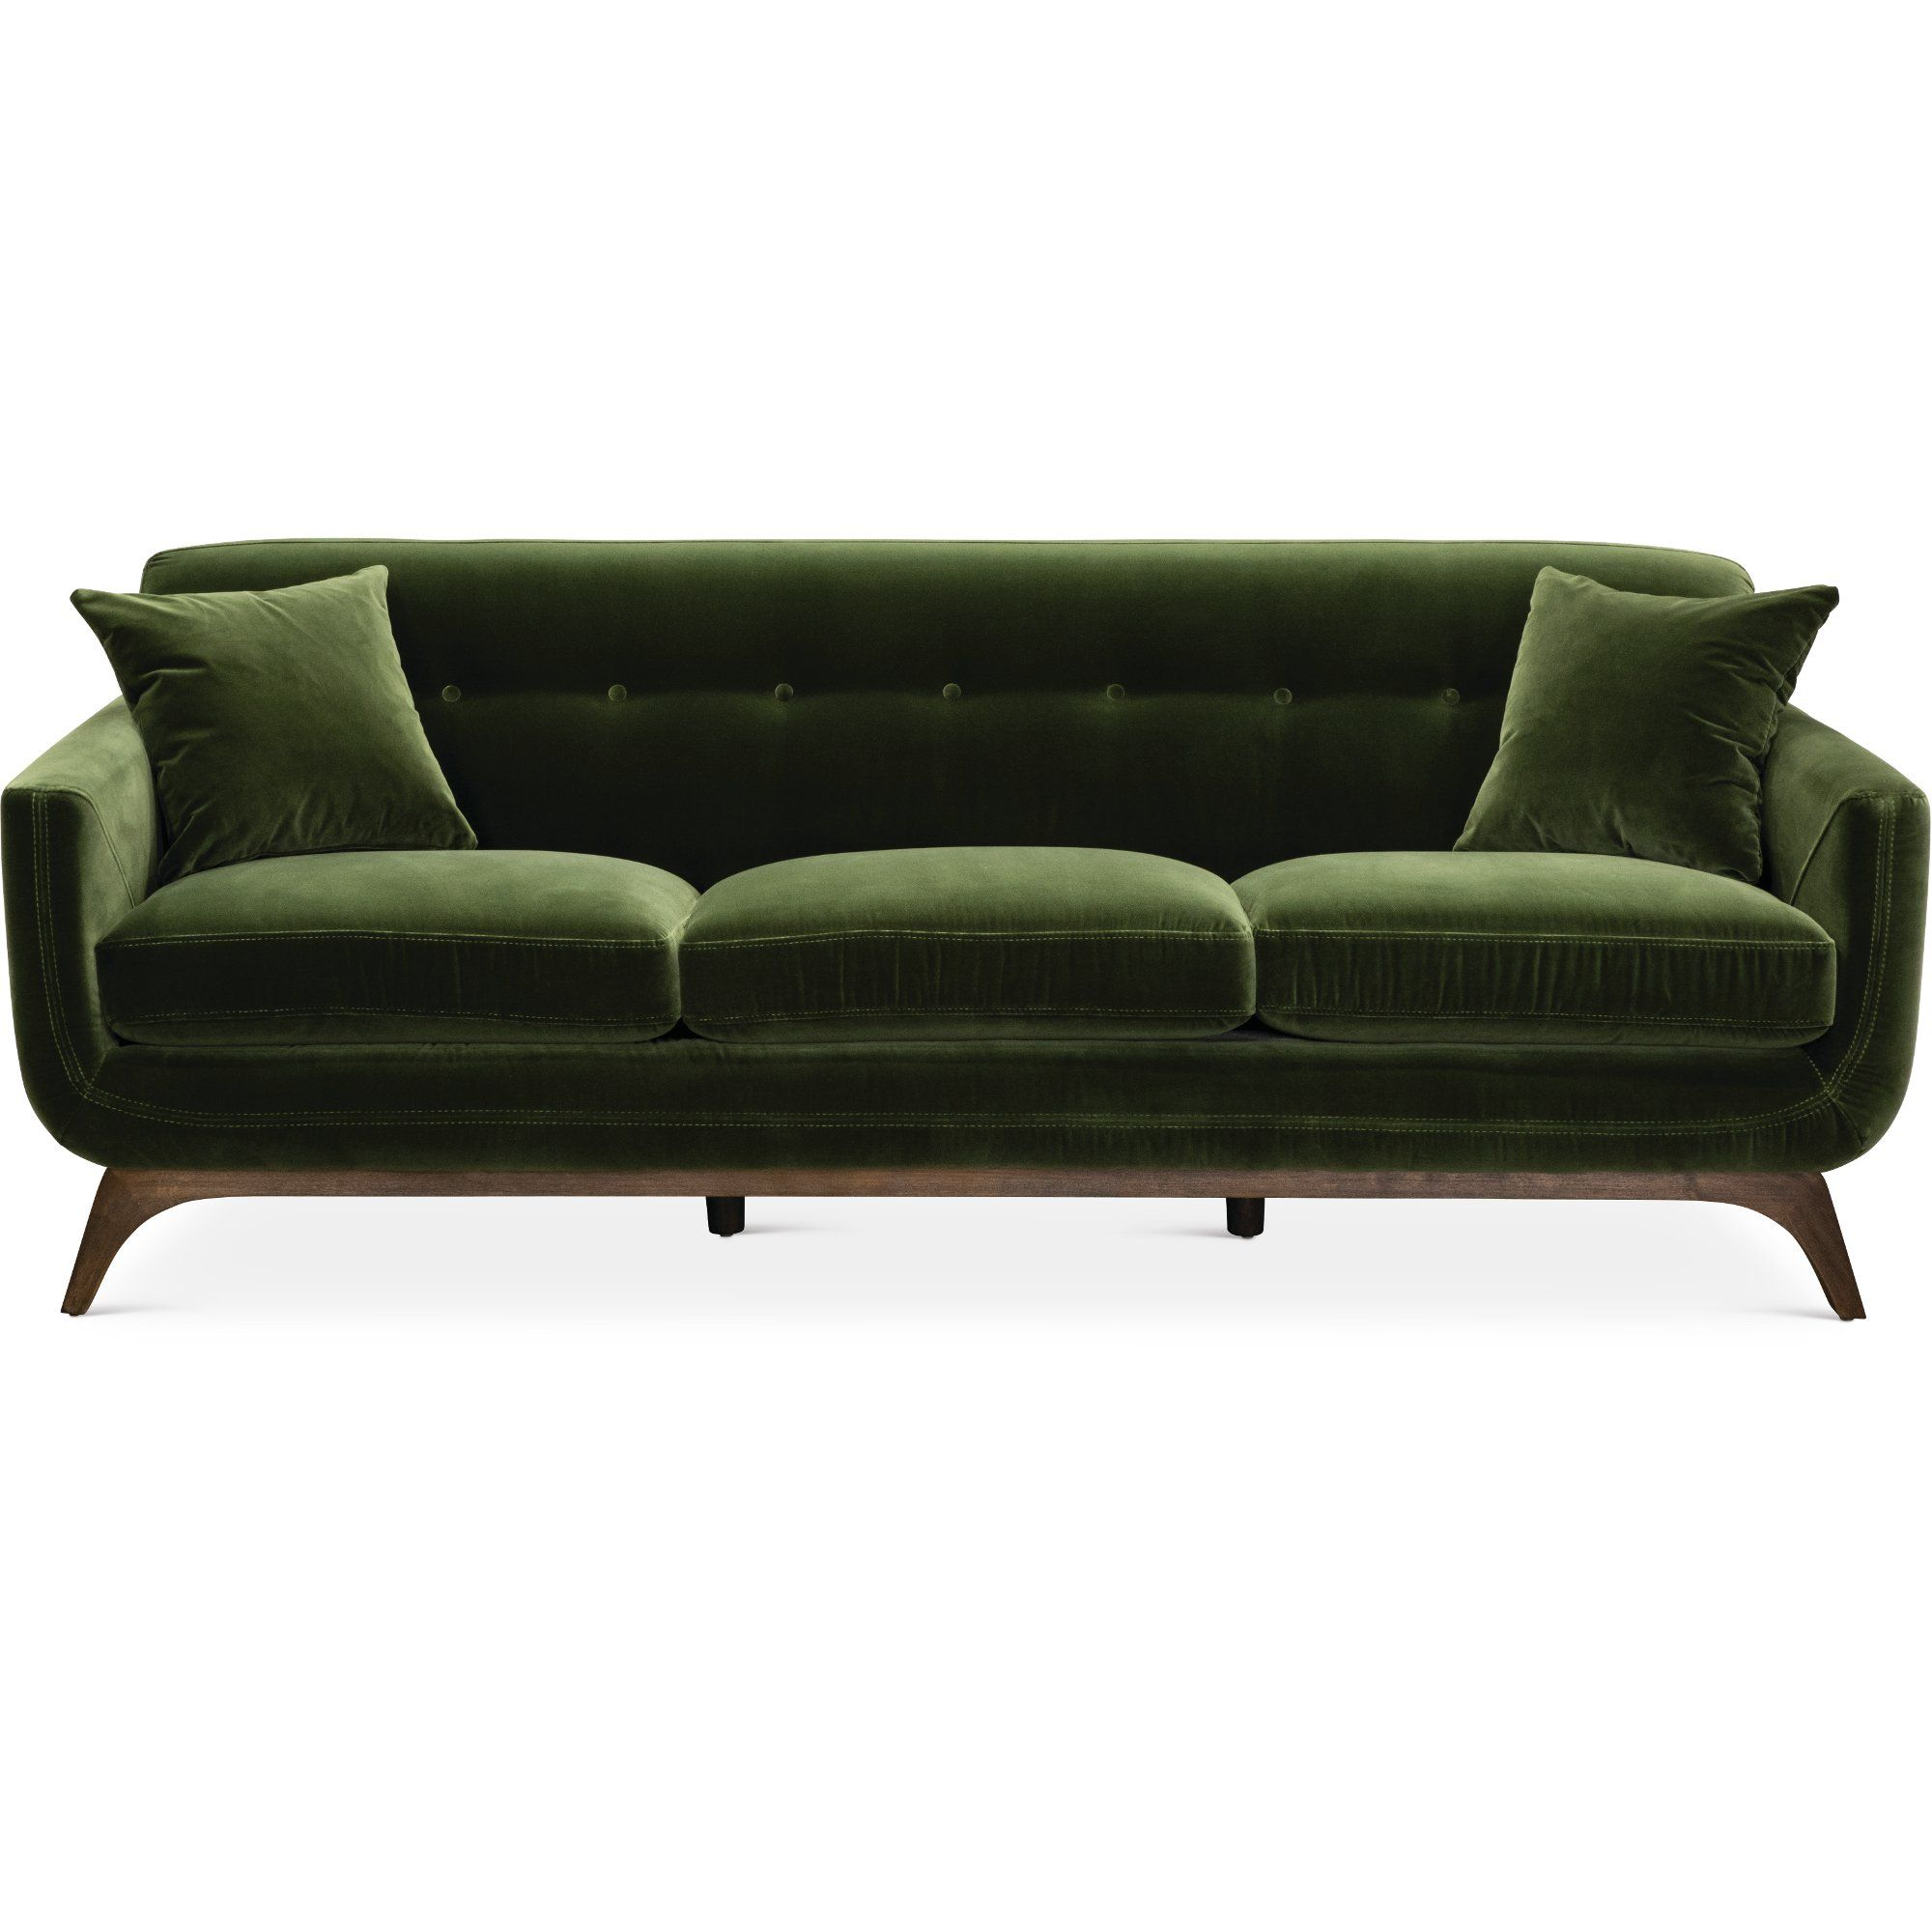 Mid century modern olive green sofa falkirk rc willey furniture store